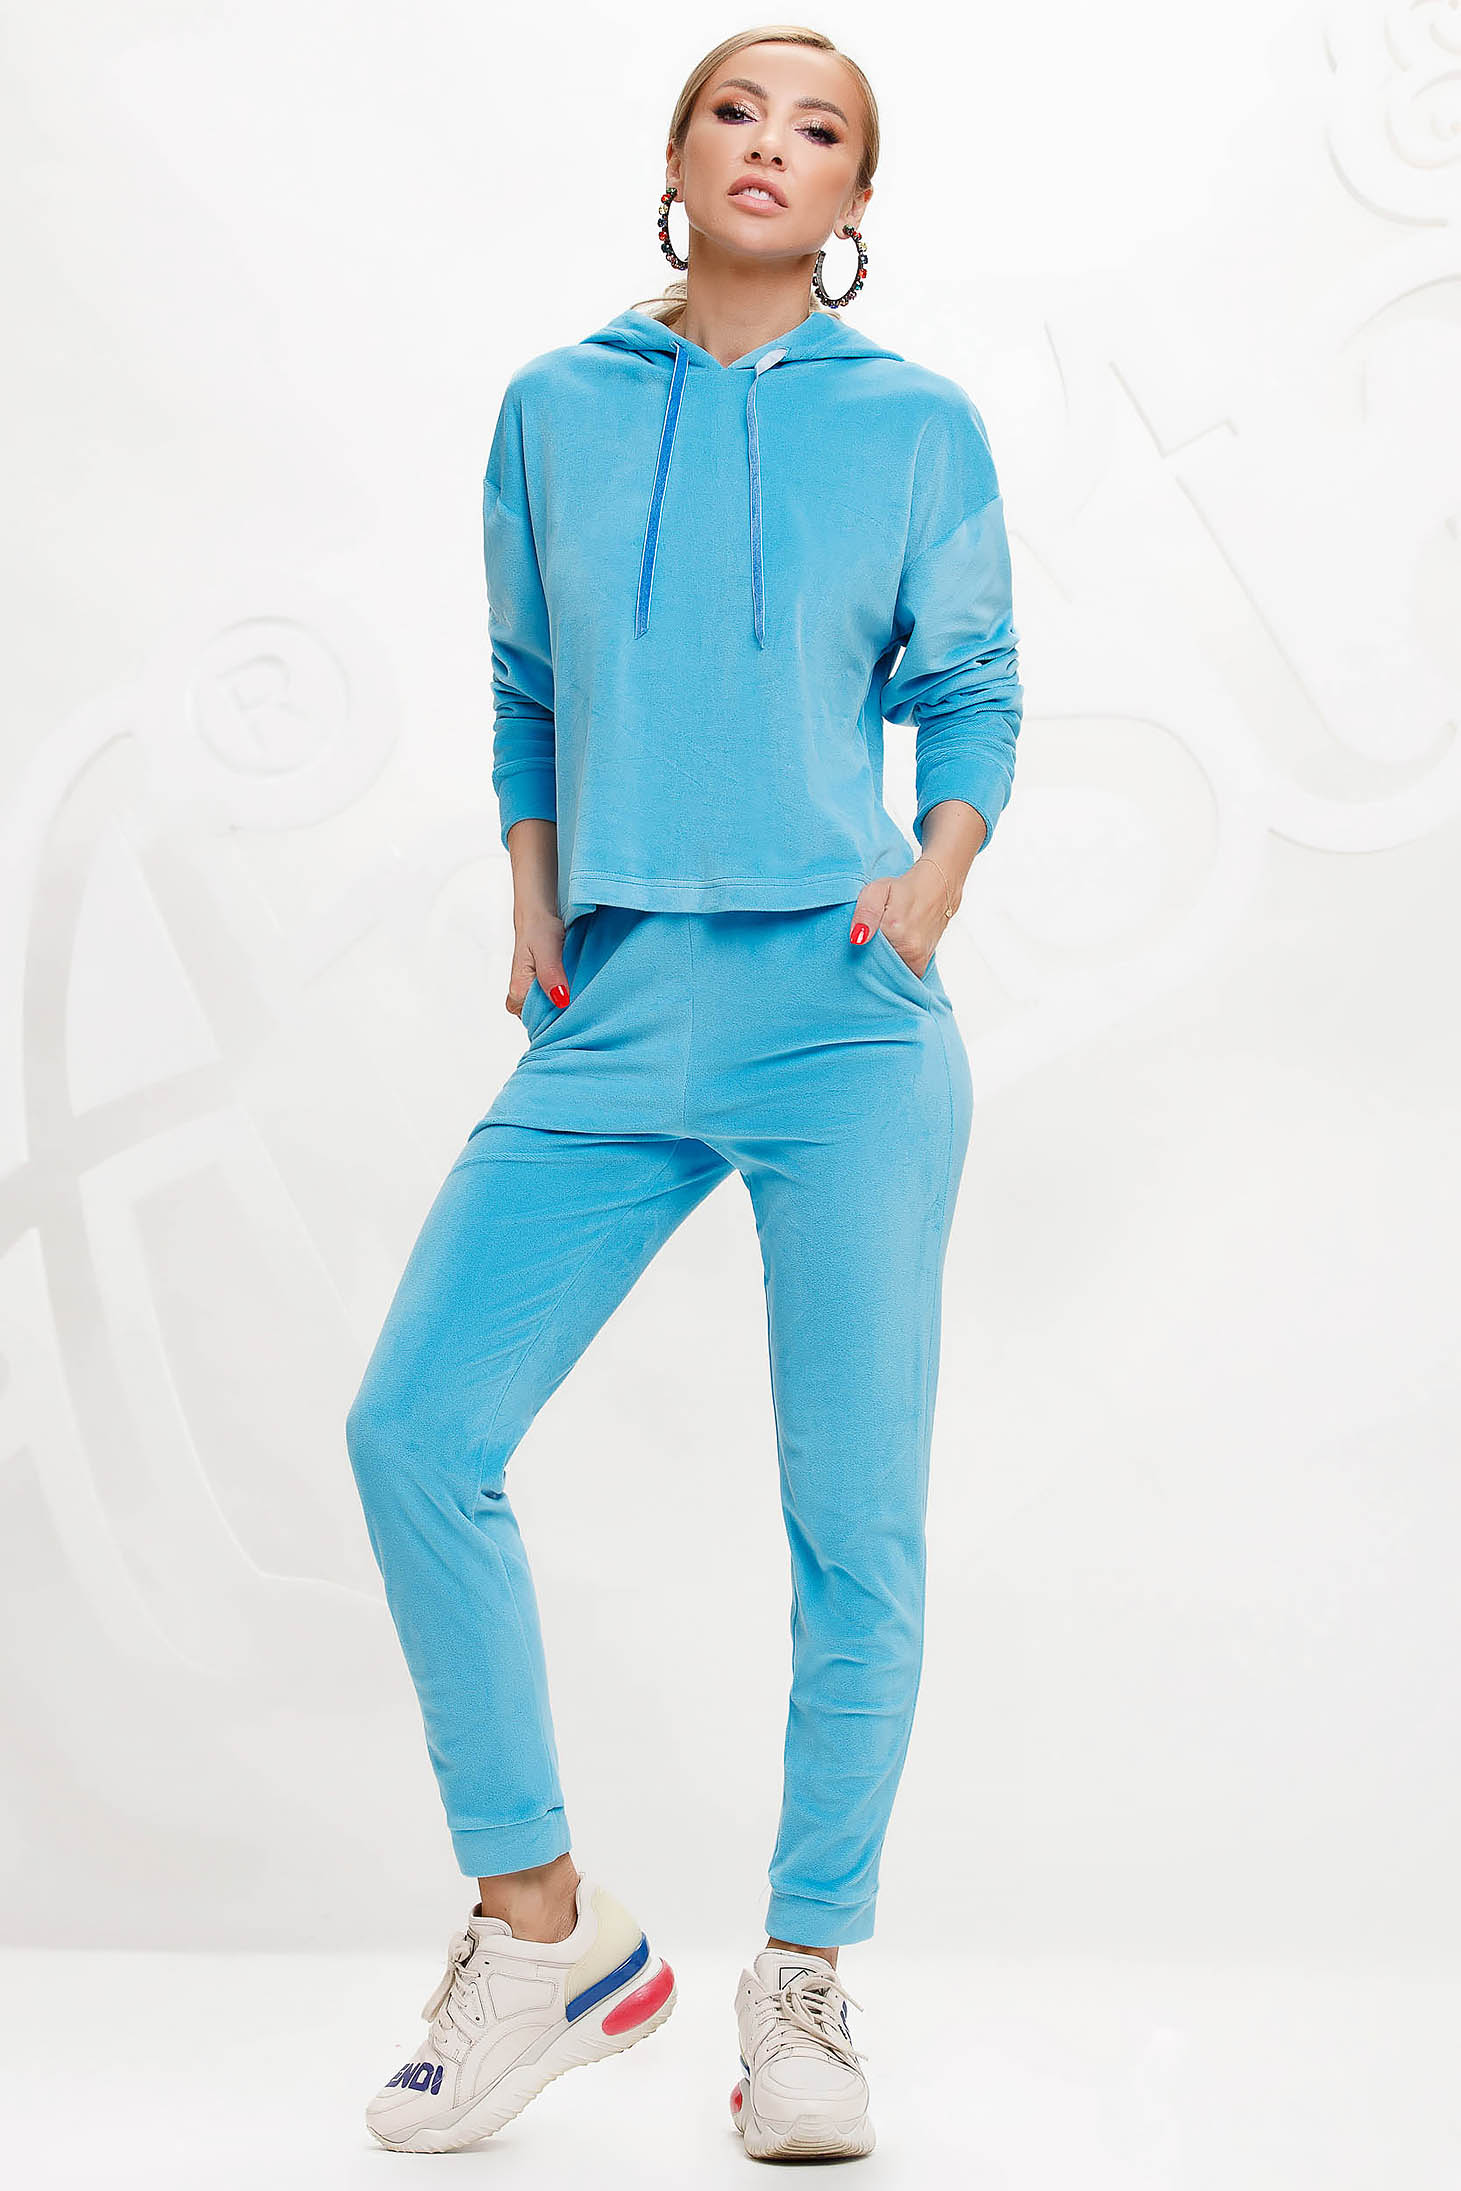 Lightblue sport 2 pieces 2 pieces loose fit with undetachable hood